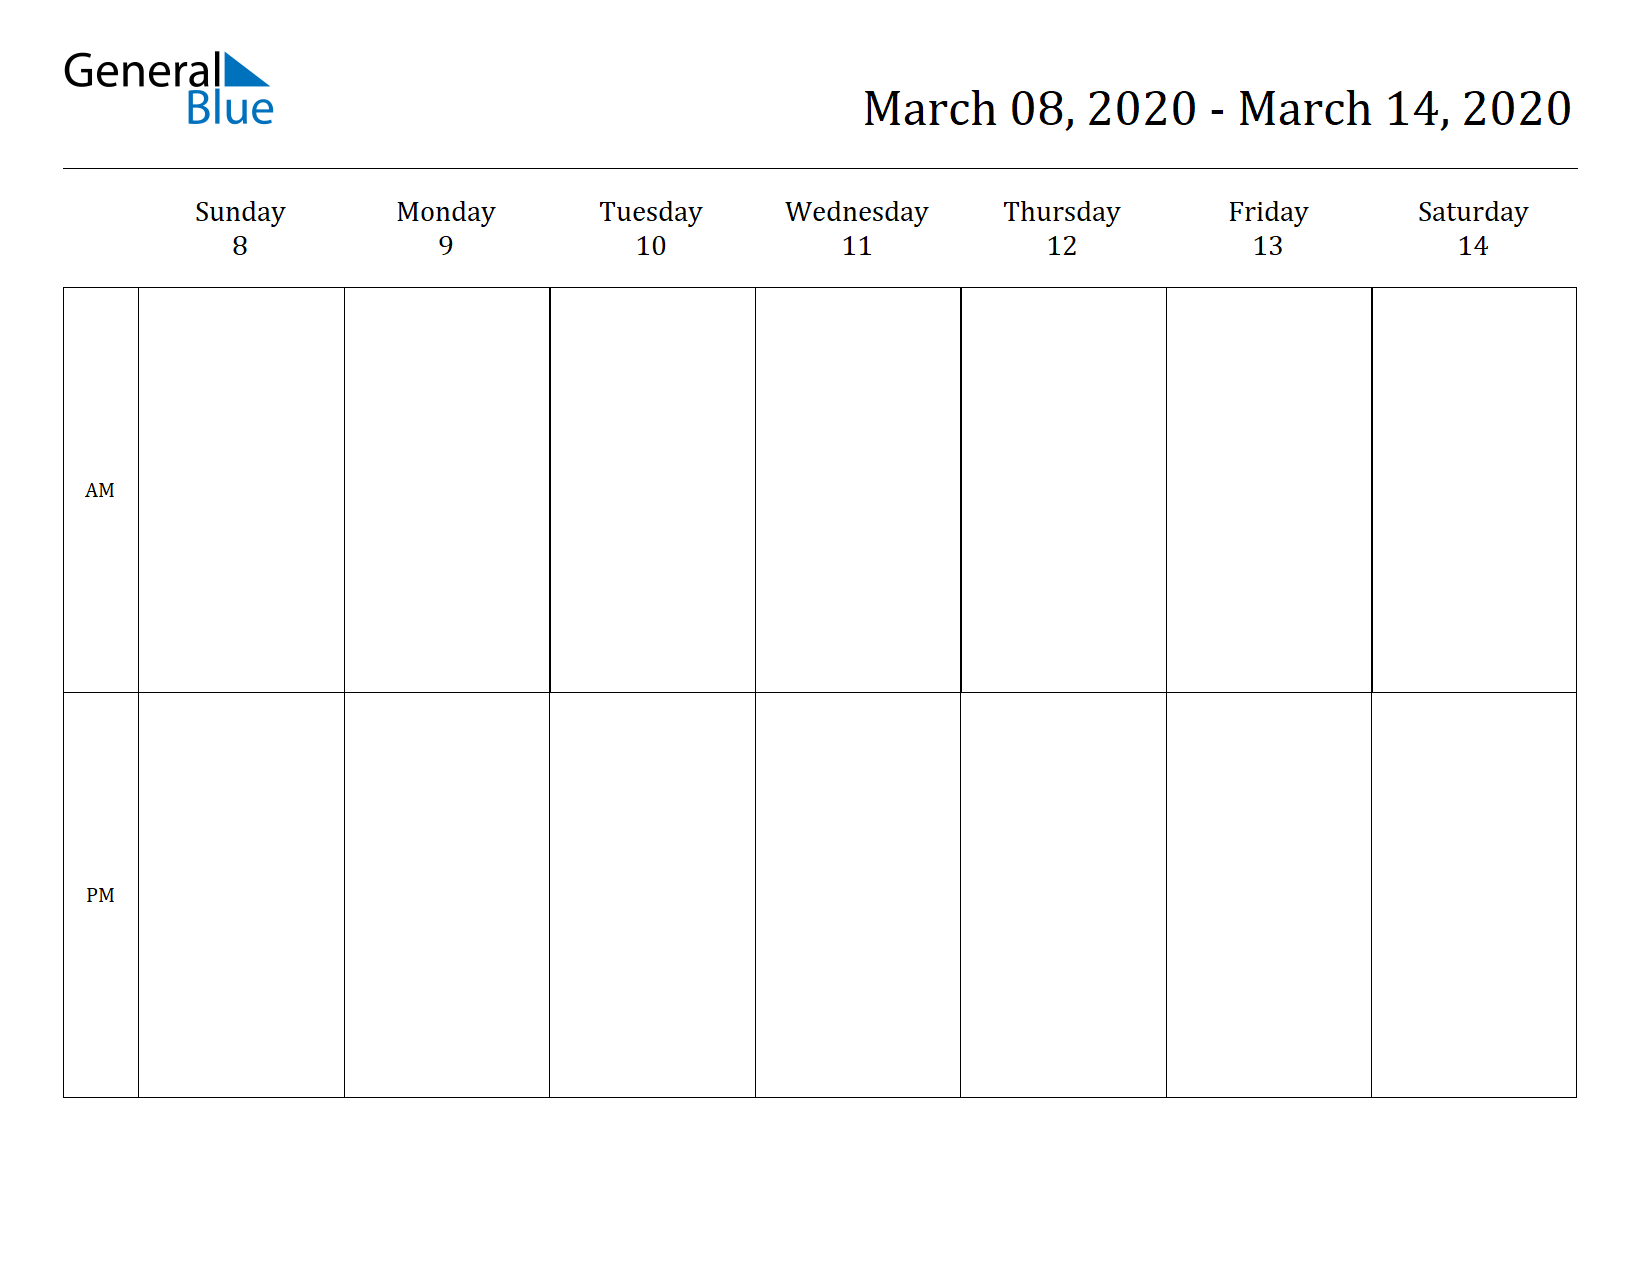 Weekly Calendar for Mar 08, 2020 to Mar 14, 2020